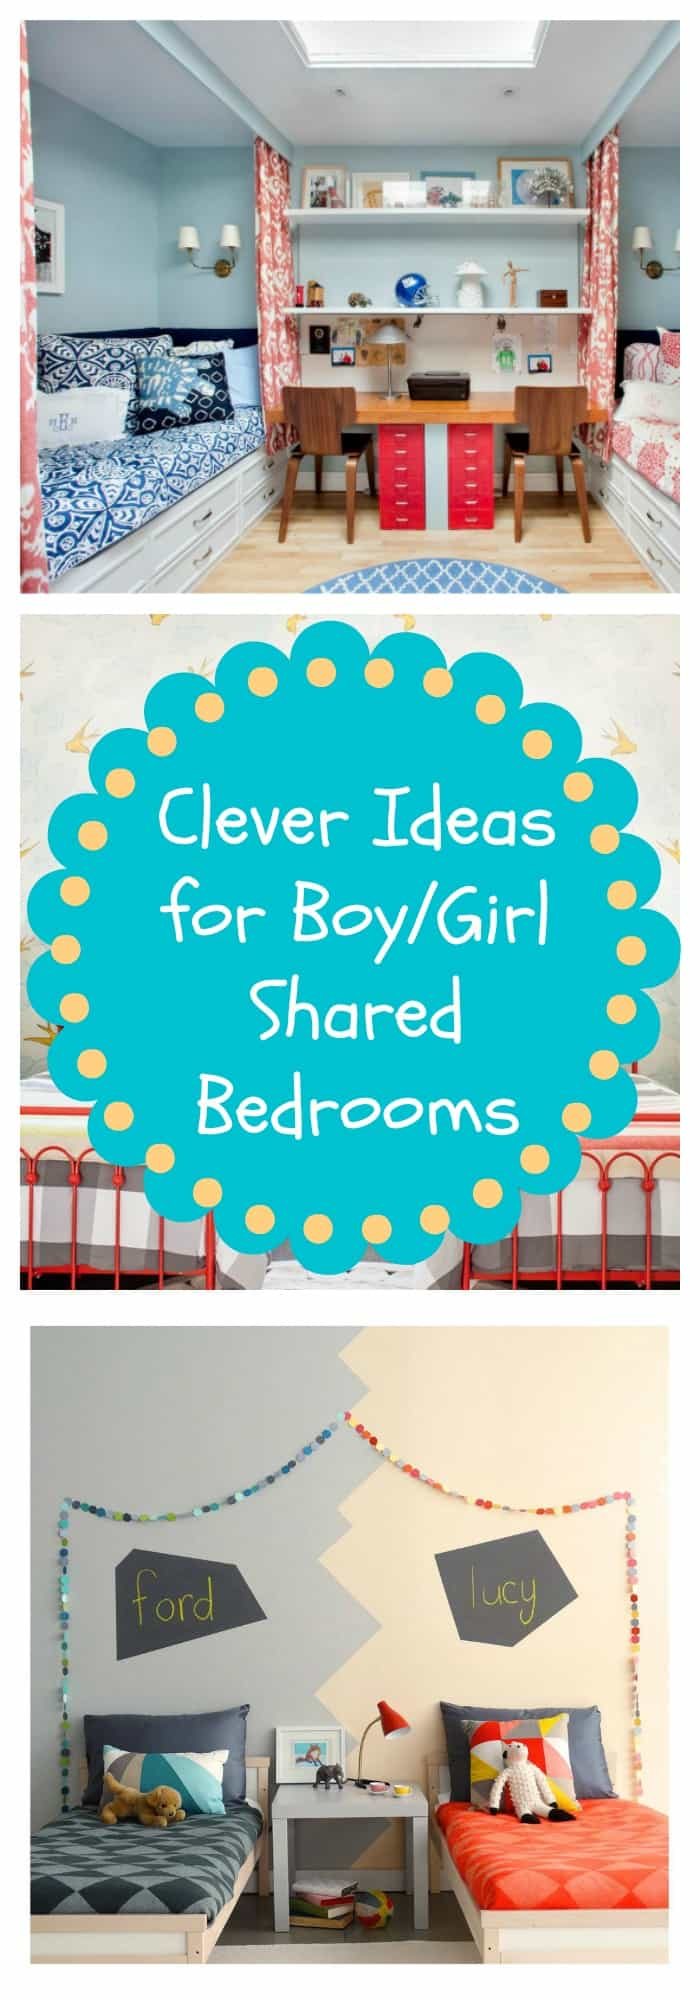 ideas for boy/girl shared bedrooms